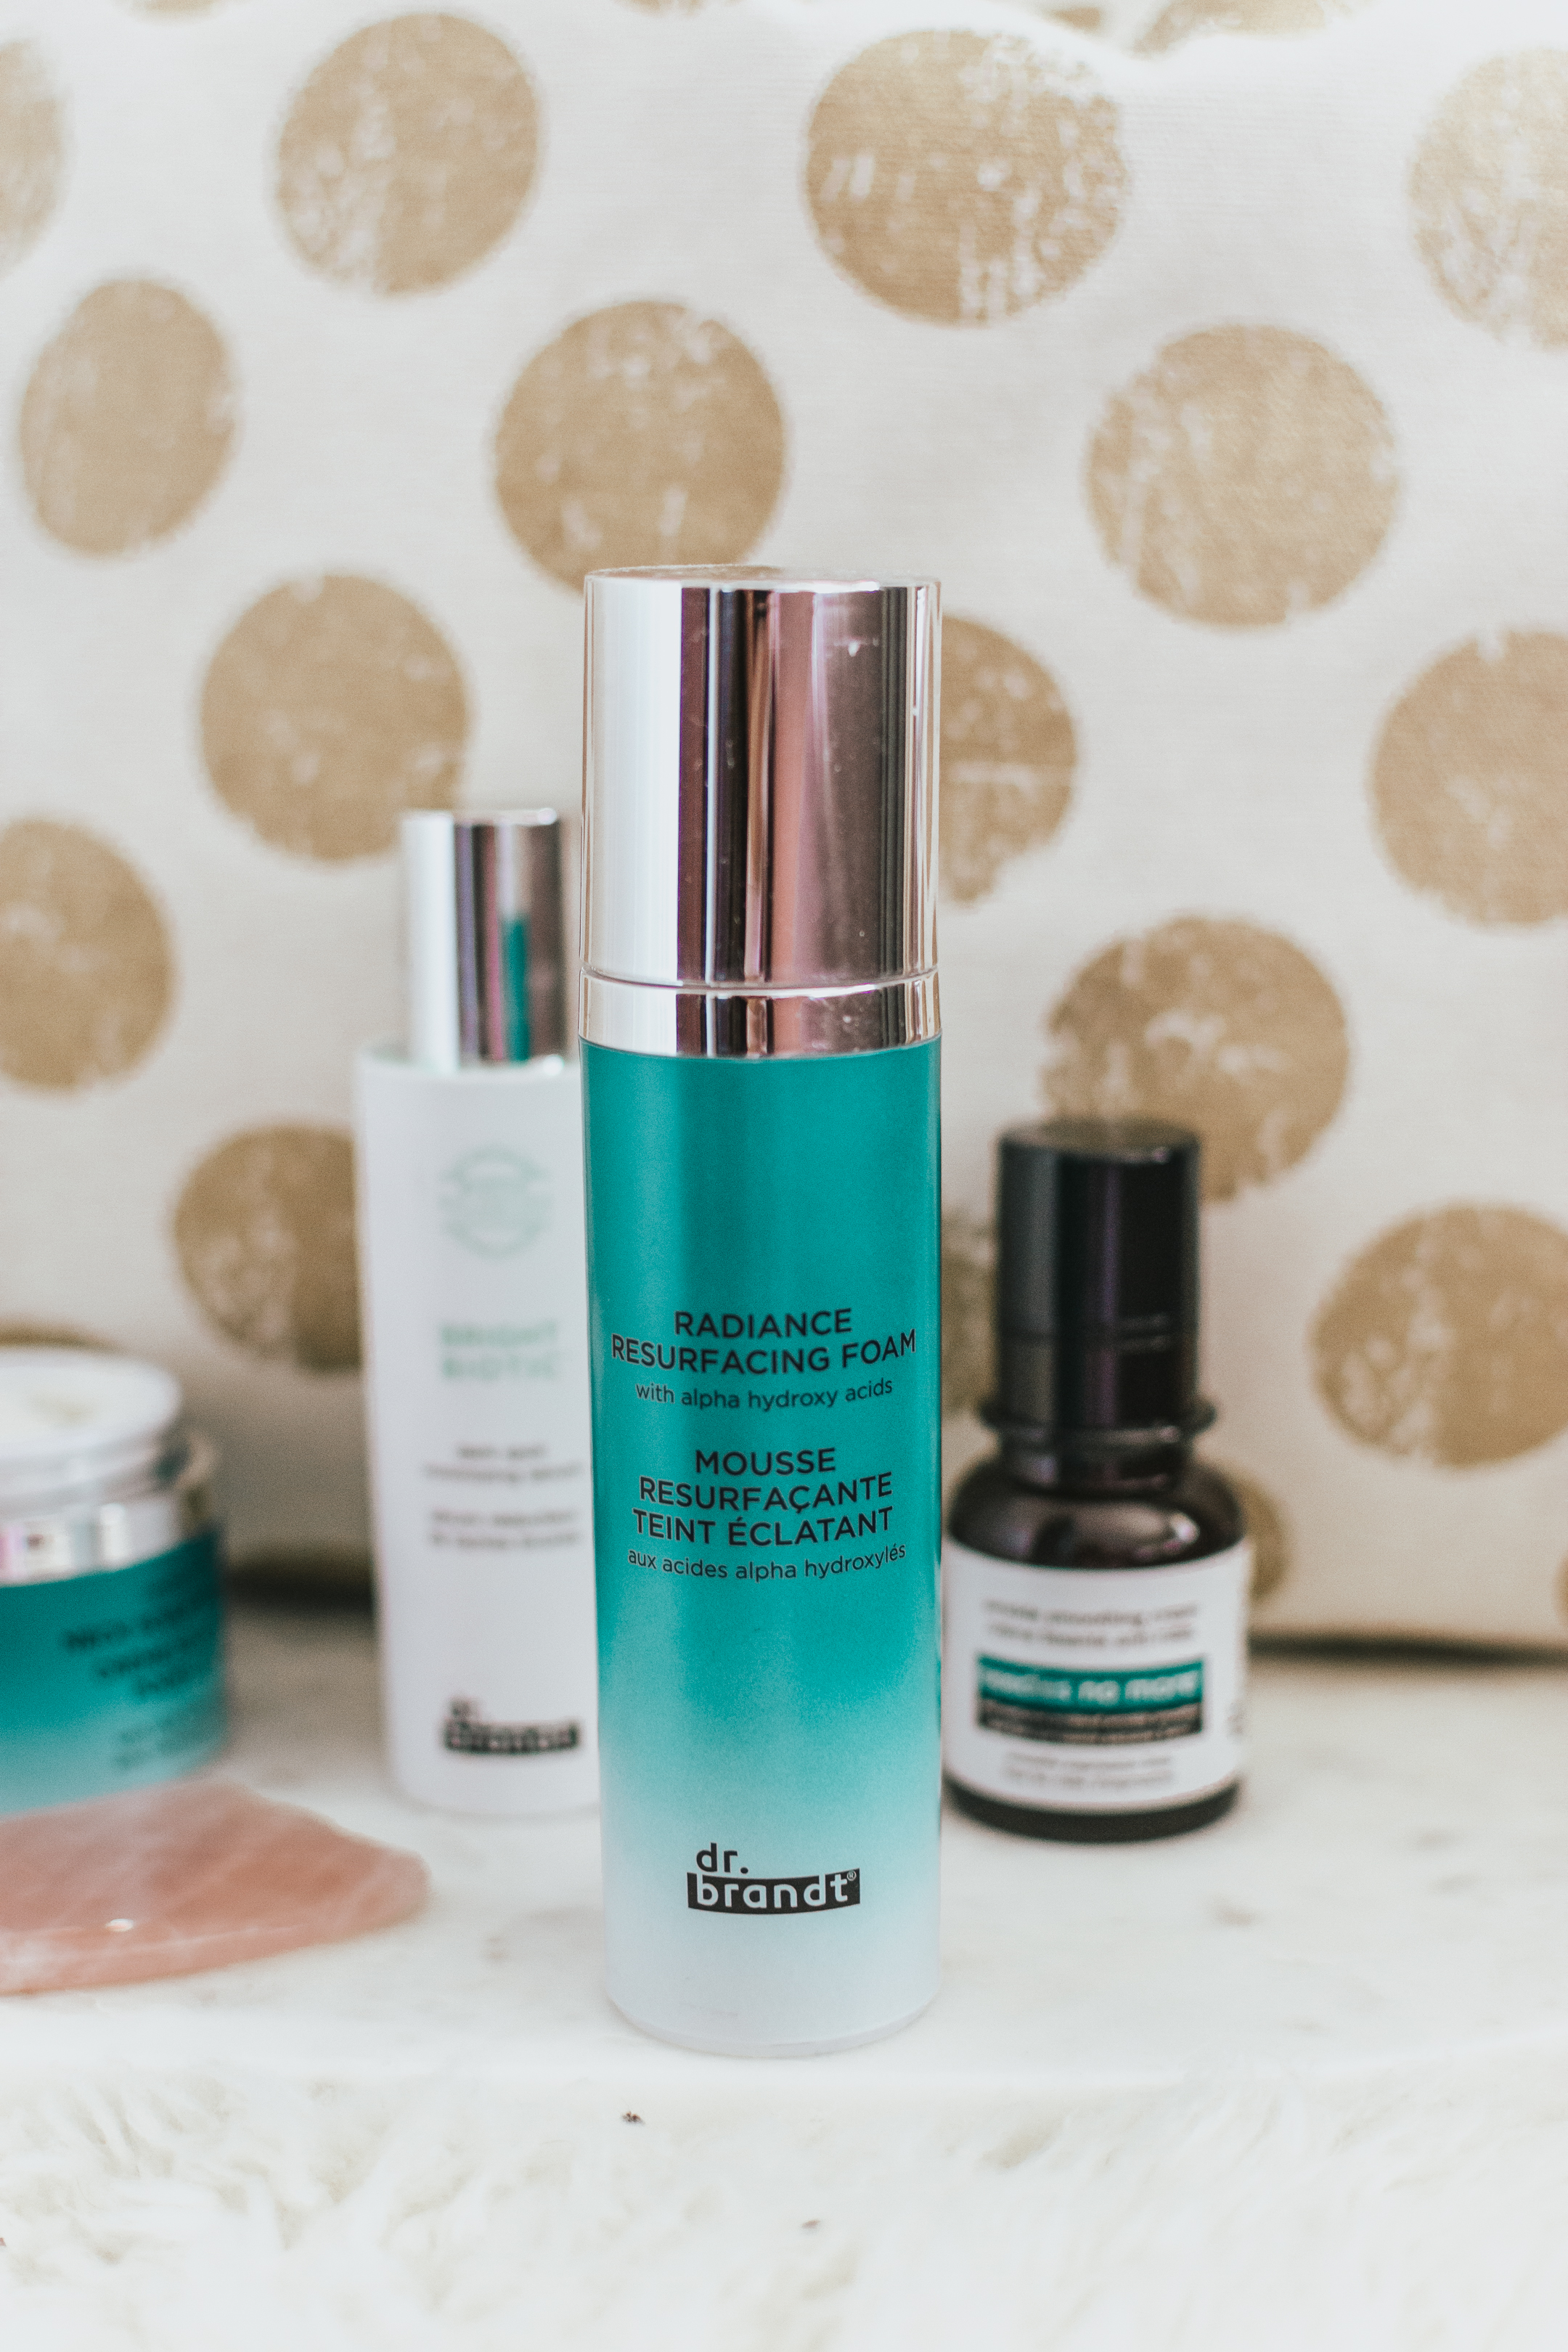 Dr Brandt product review, best skin care products, skincare routine, new beauty products I'm loving